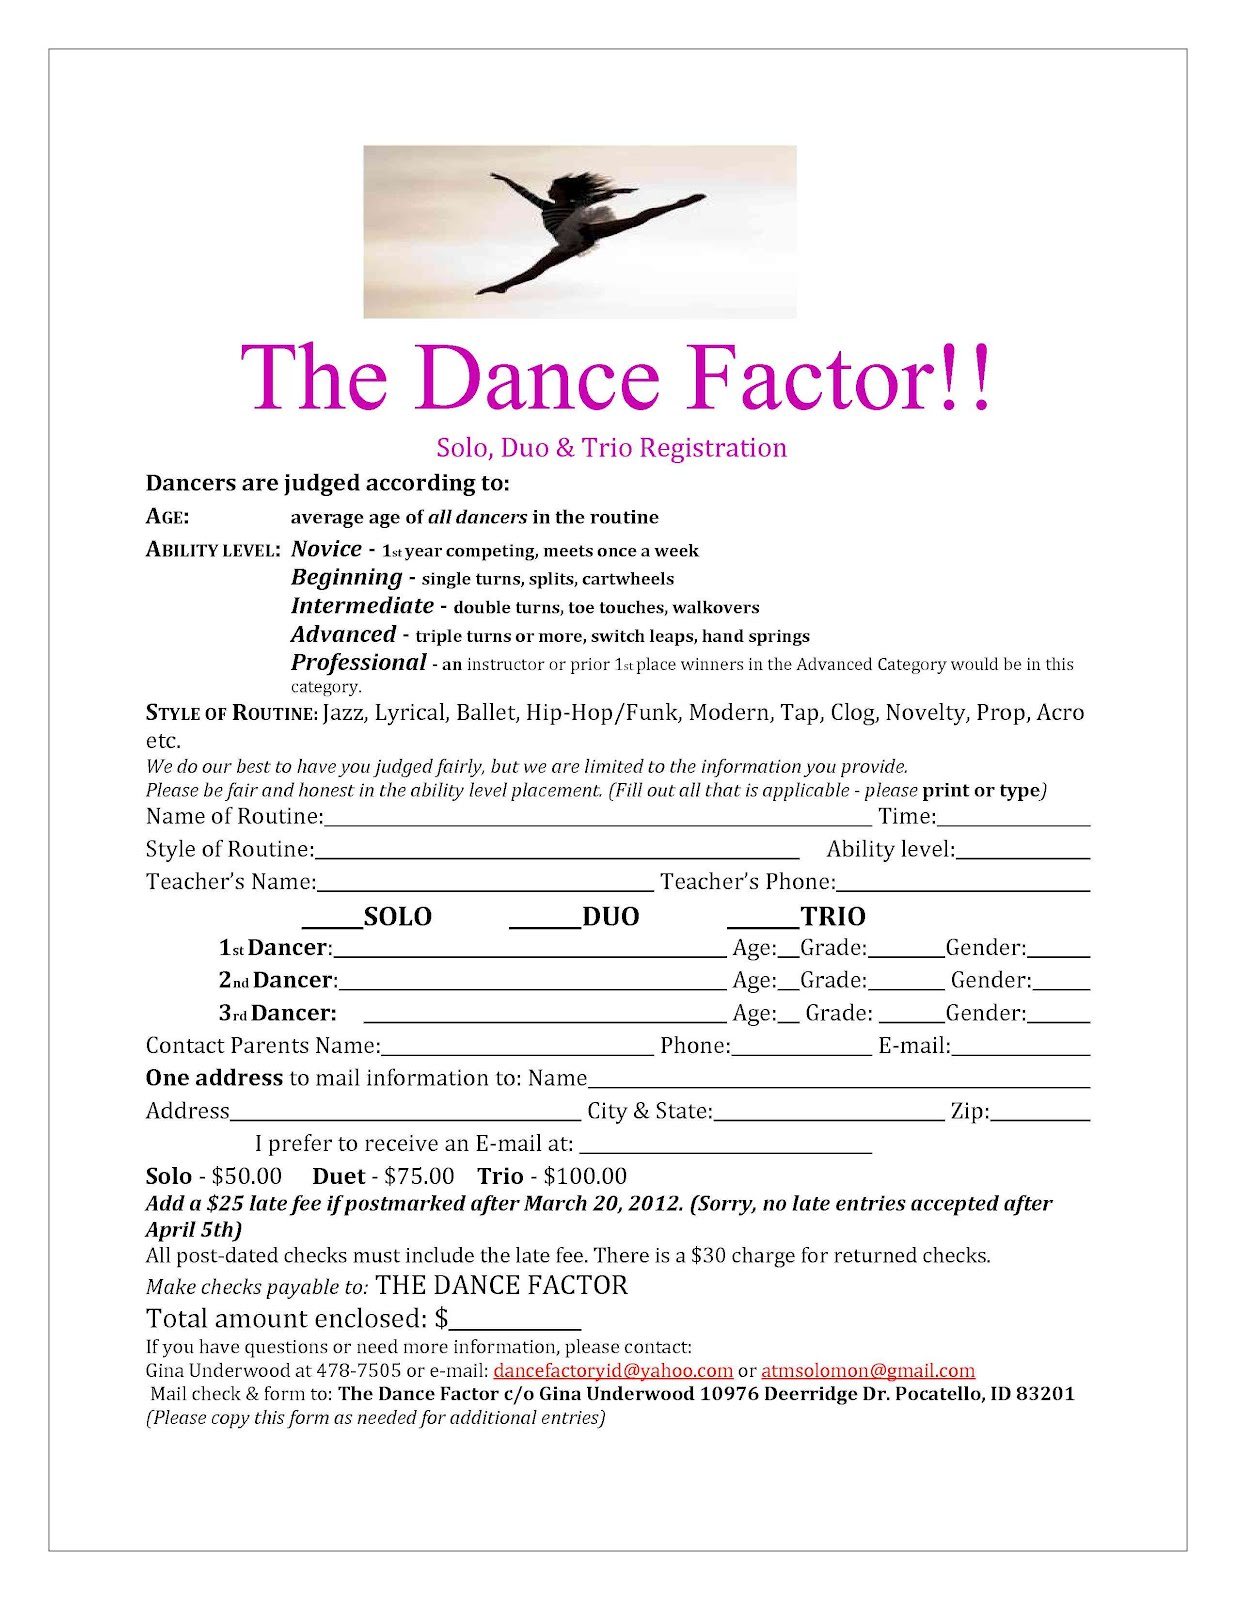 Eagle rock dance dance factor solo registration form for Dance school registration form template free